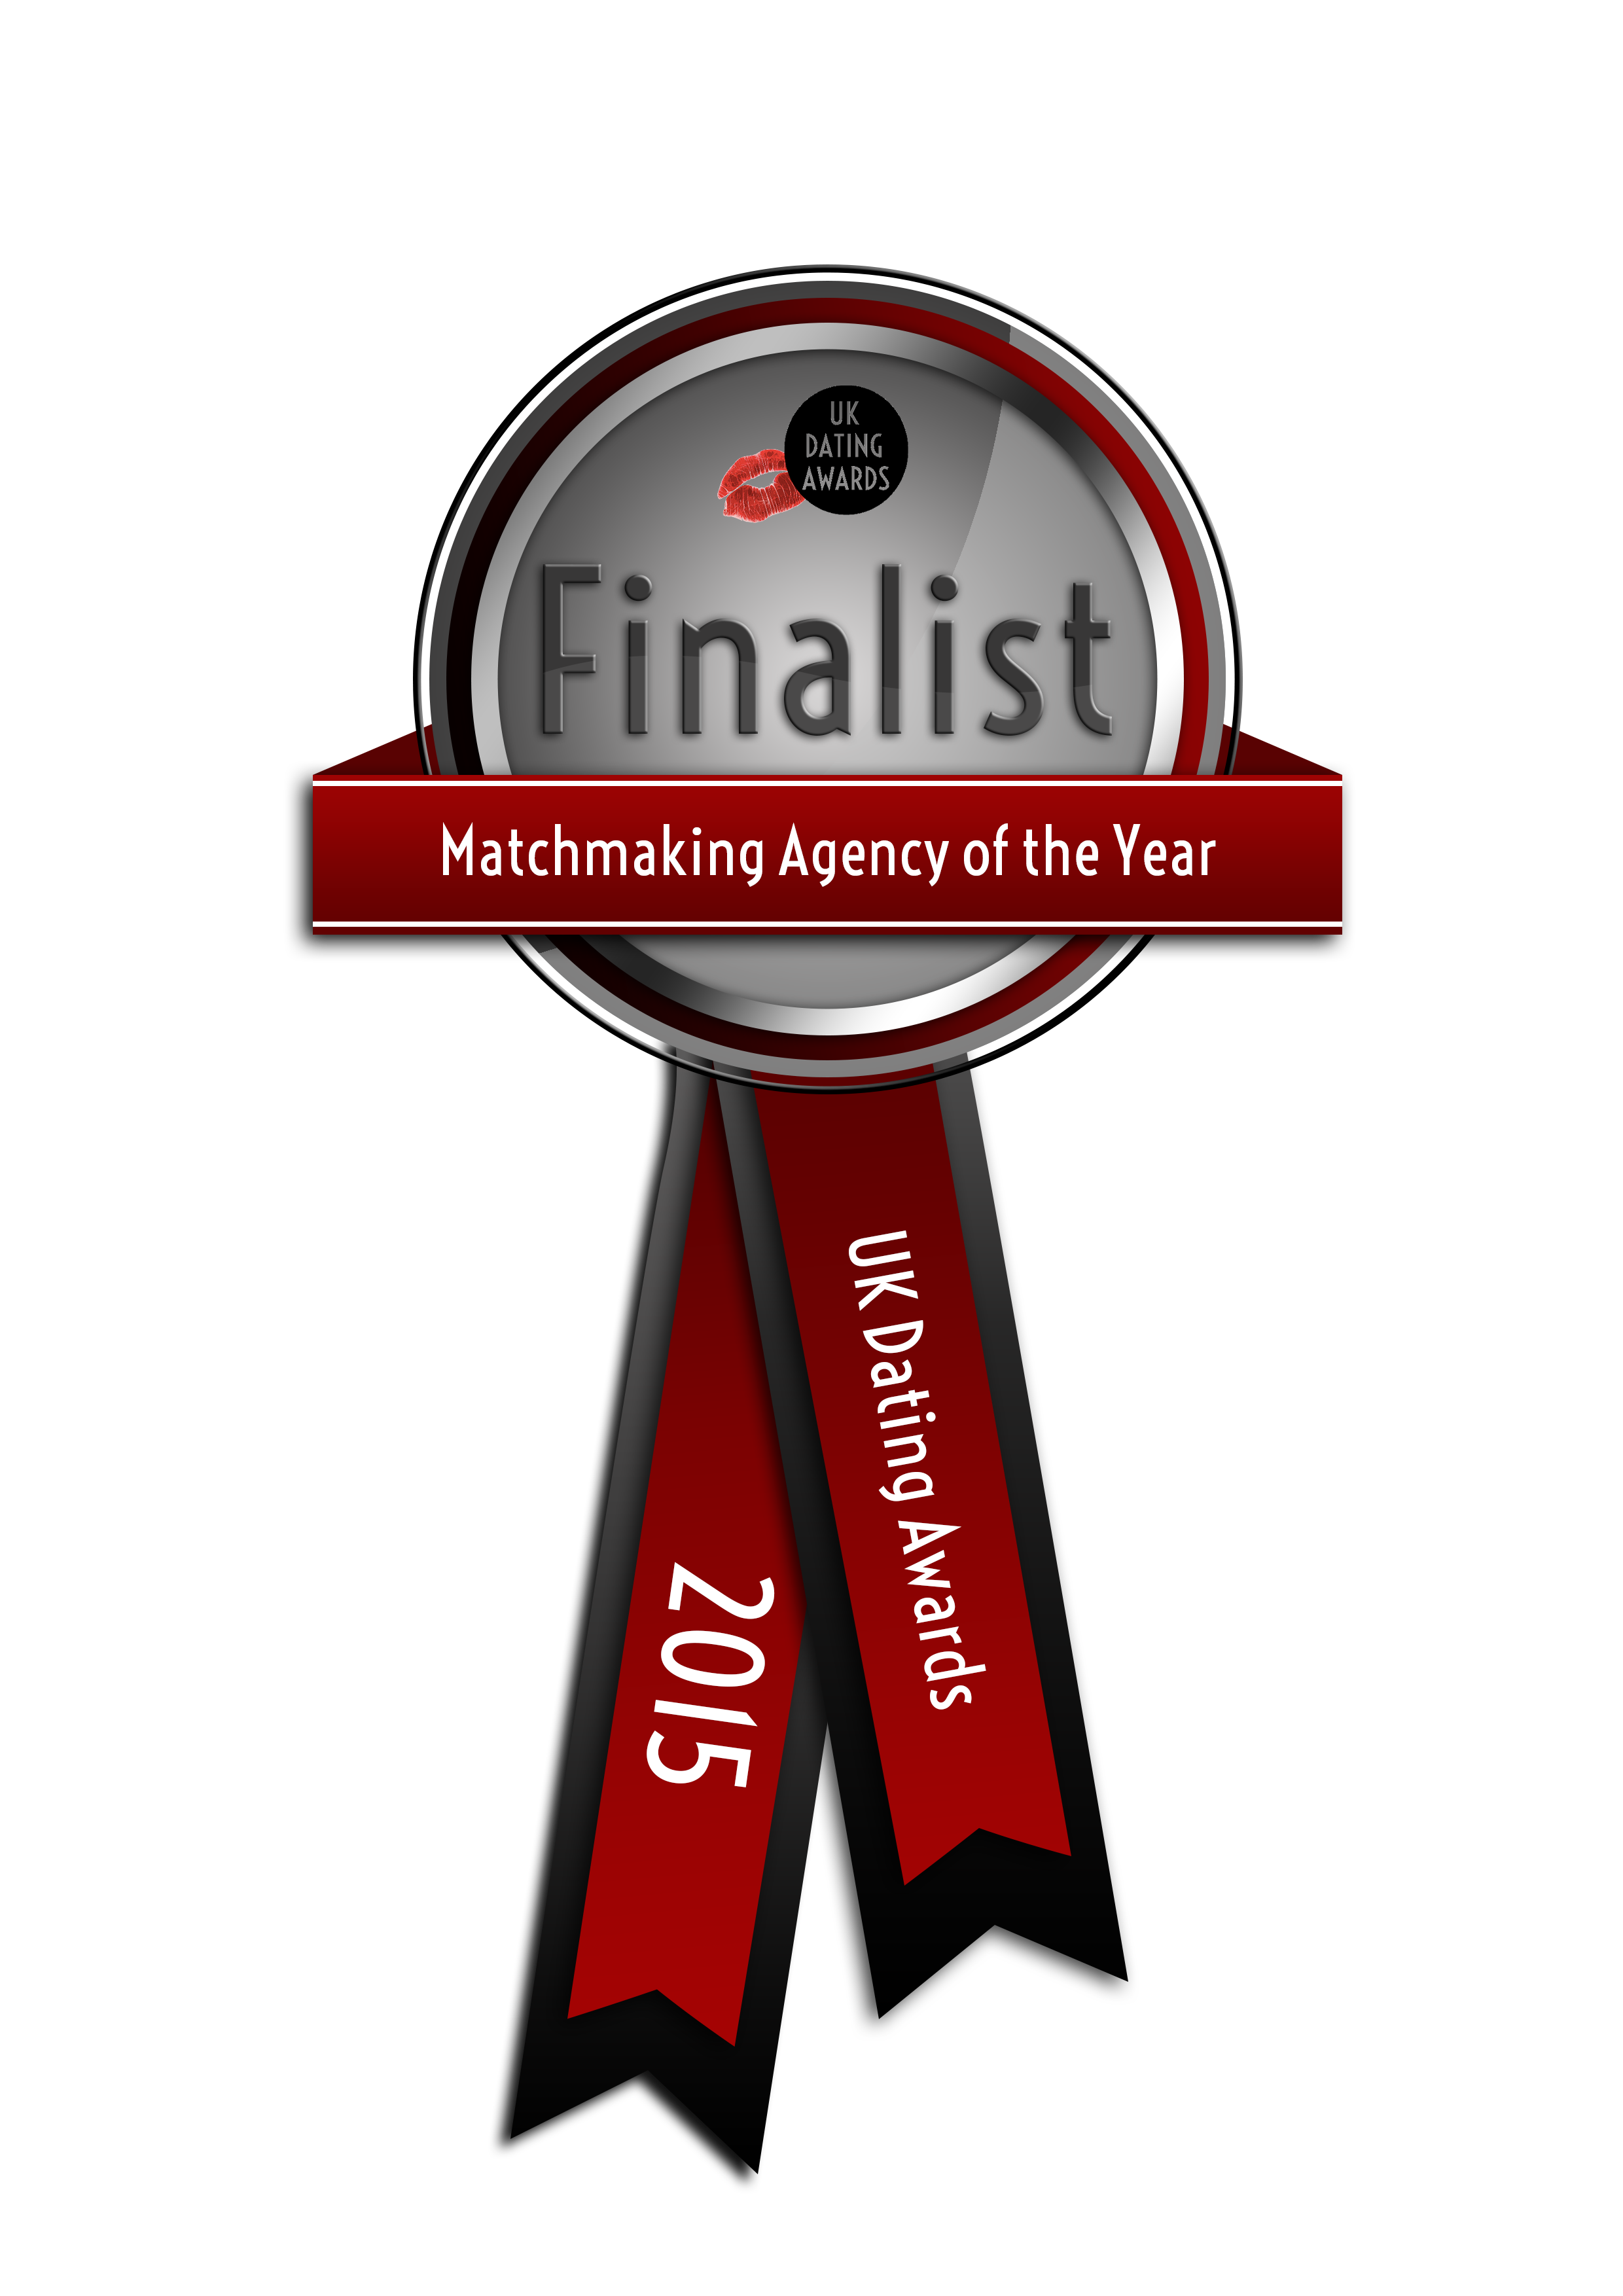 Matchmaking agency of the year